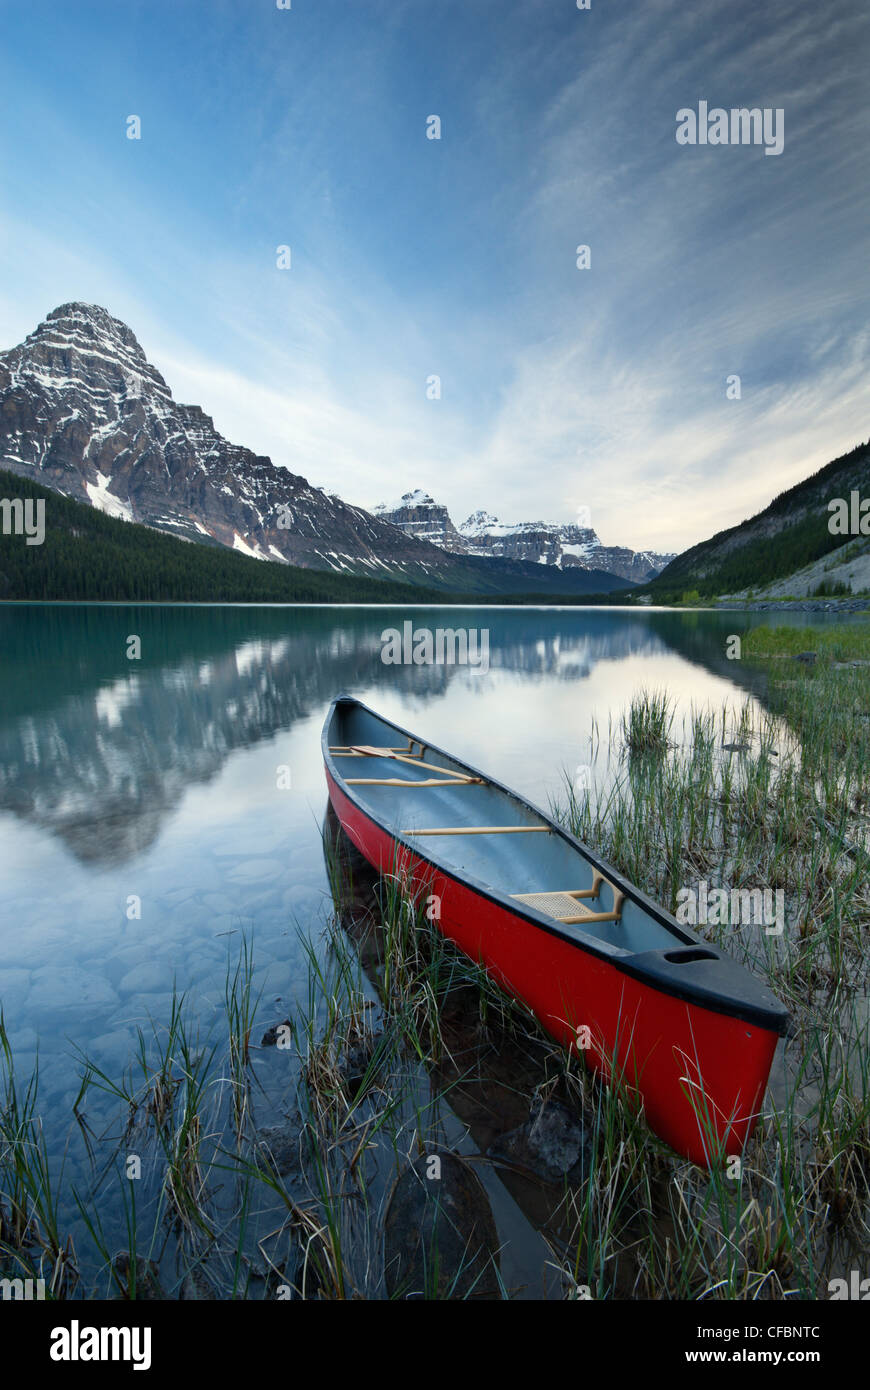 Le canoë et le Mont Chephren, Lac de la sauvagine, Banff National Park, Alberta, Canada Photo Stock